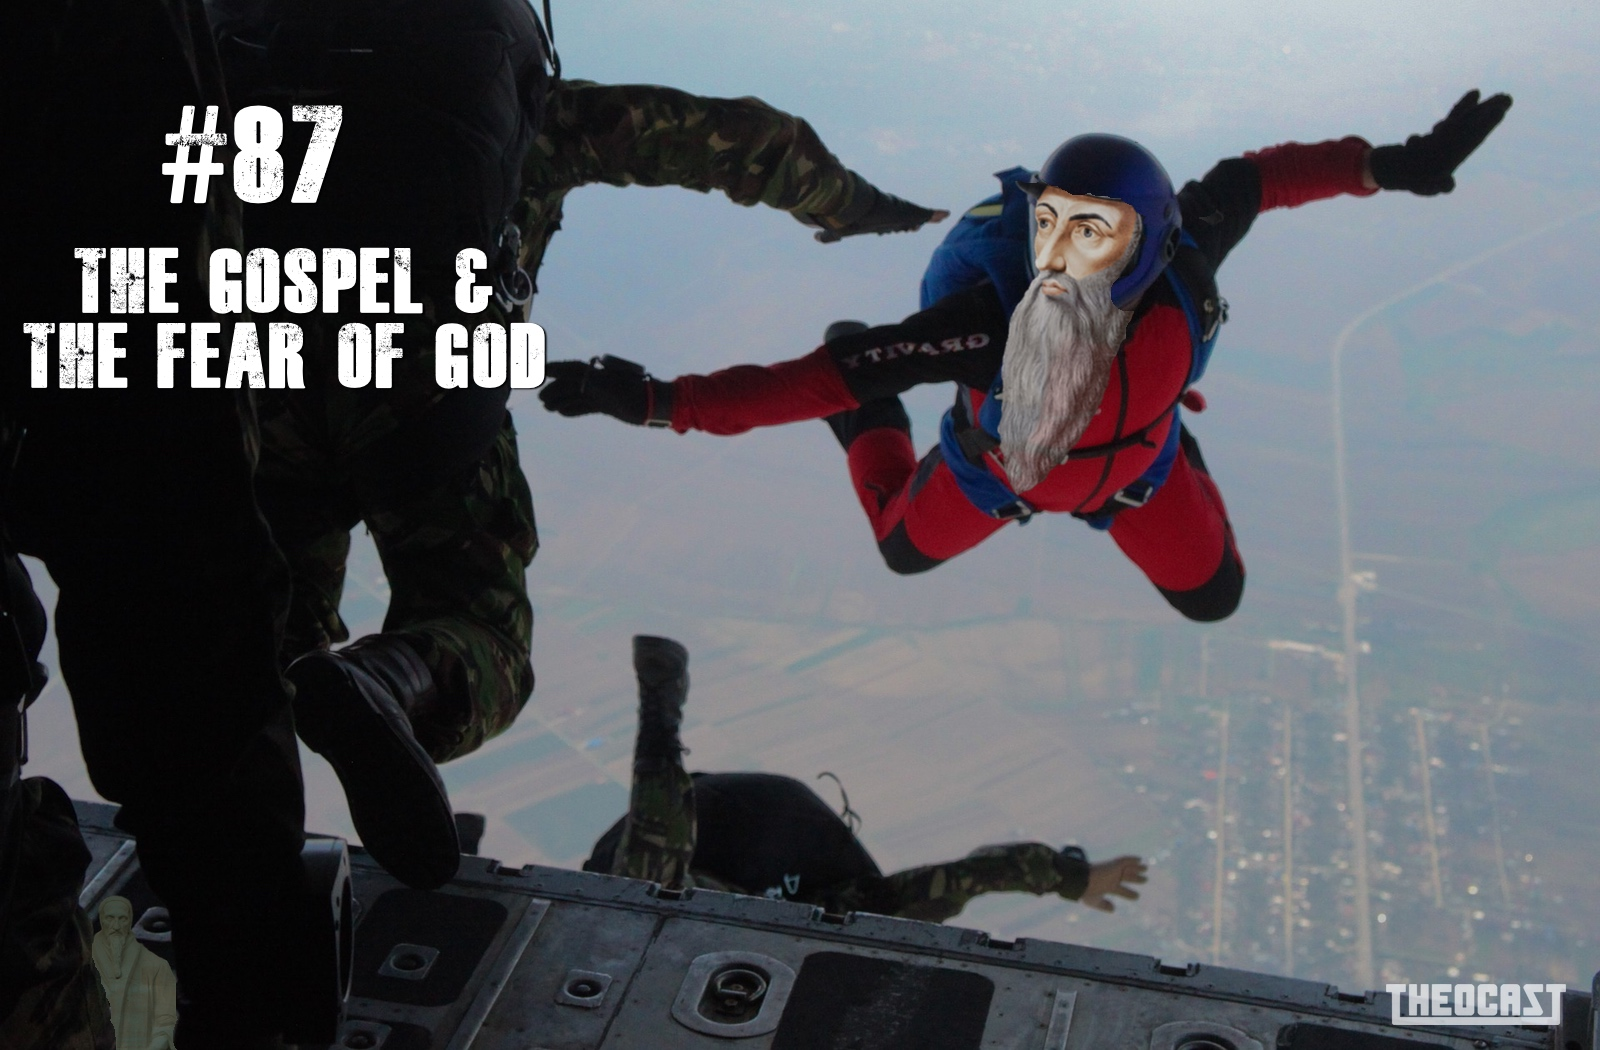 #87 The Gospel & The Fear of God